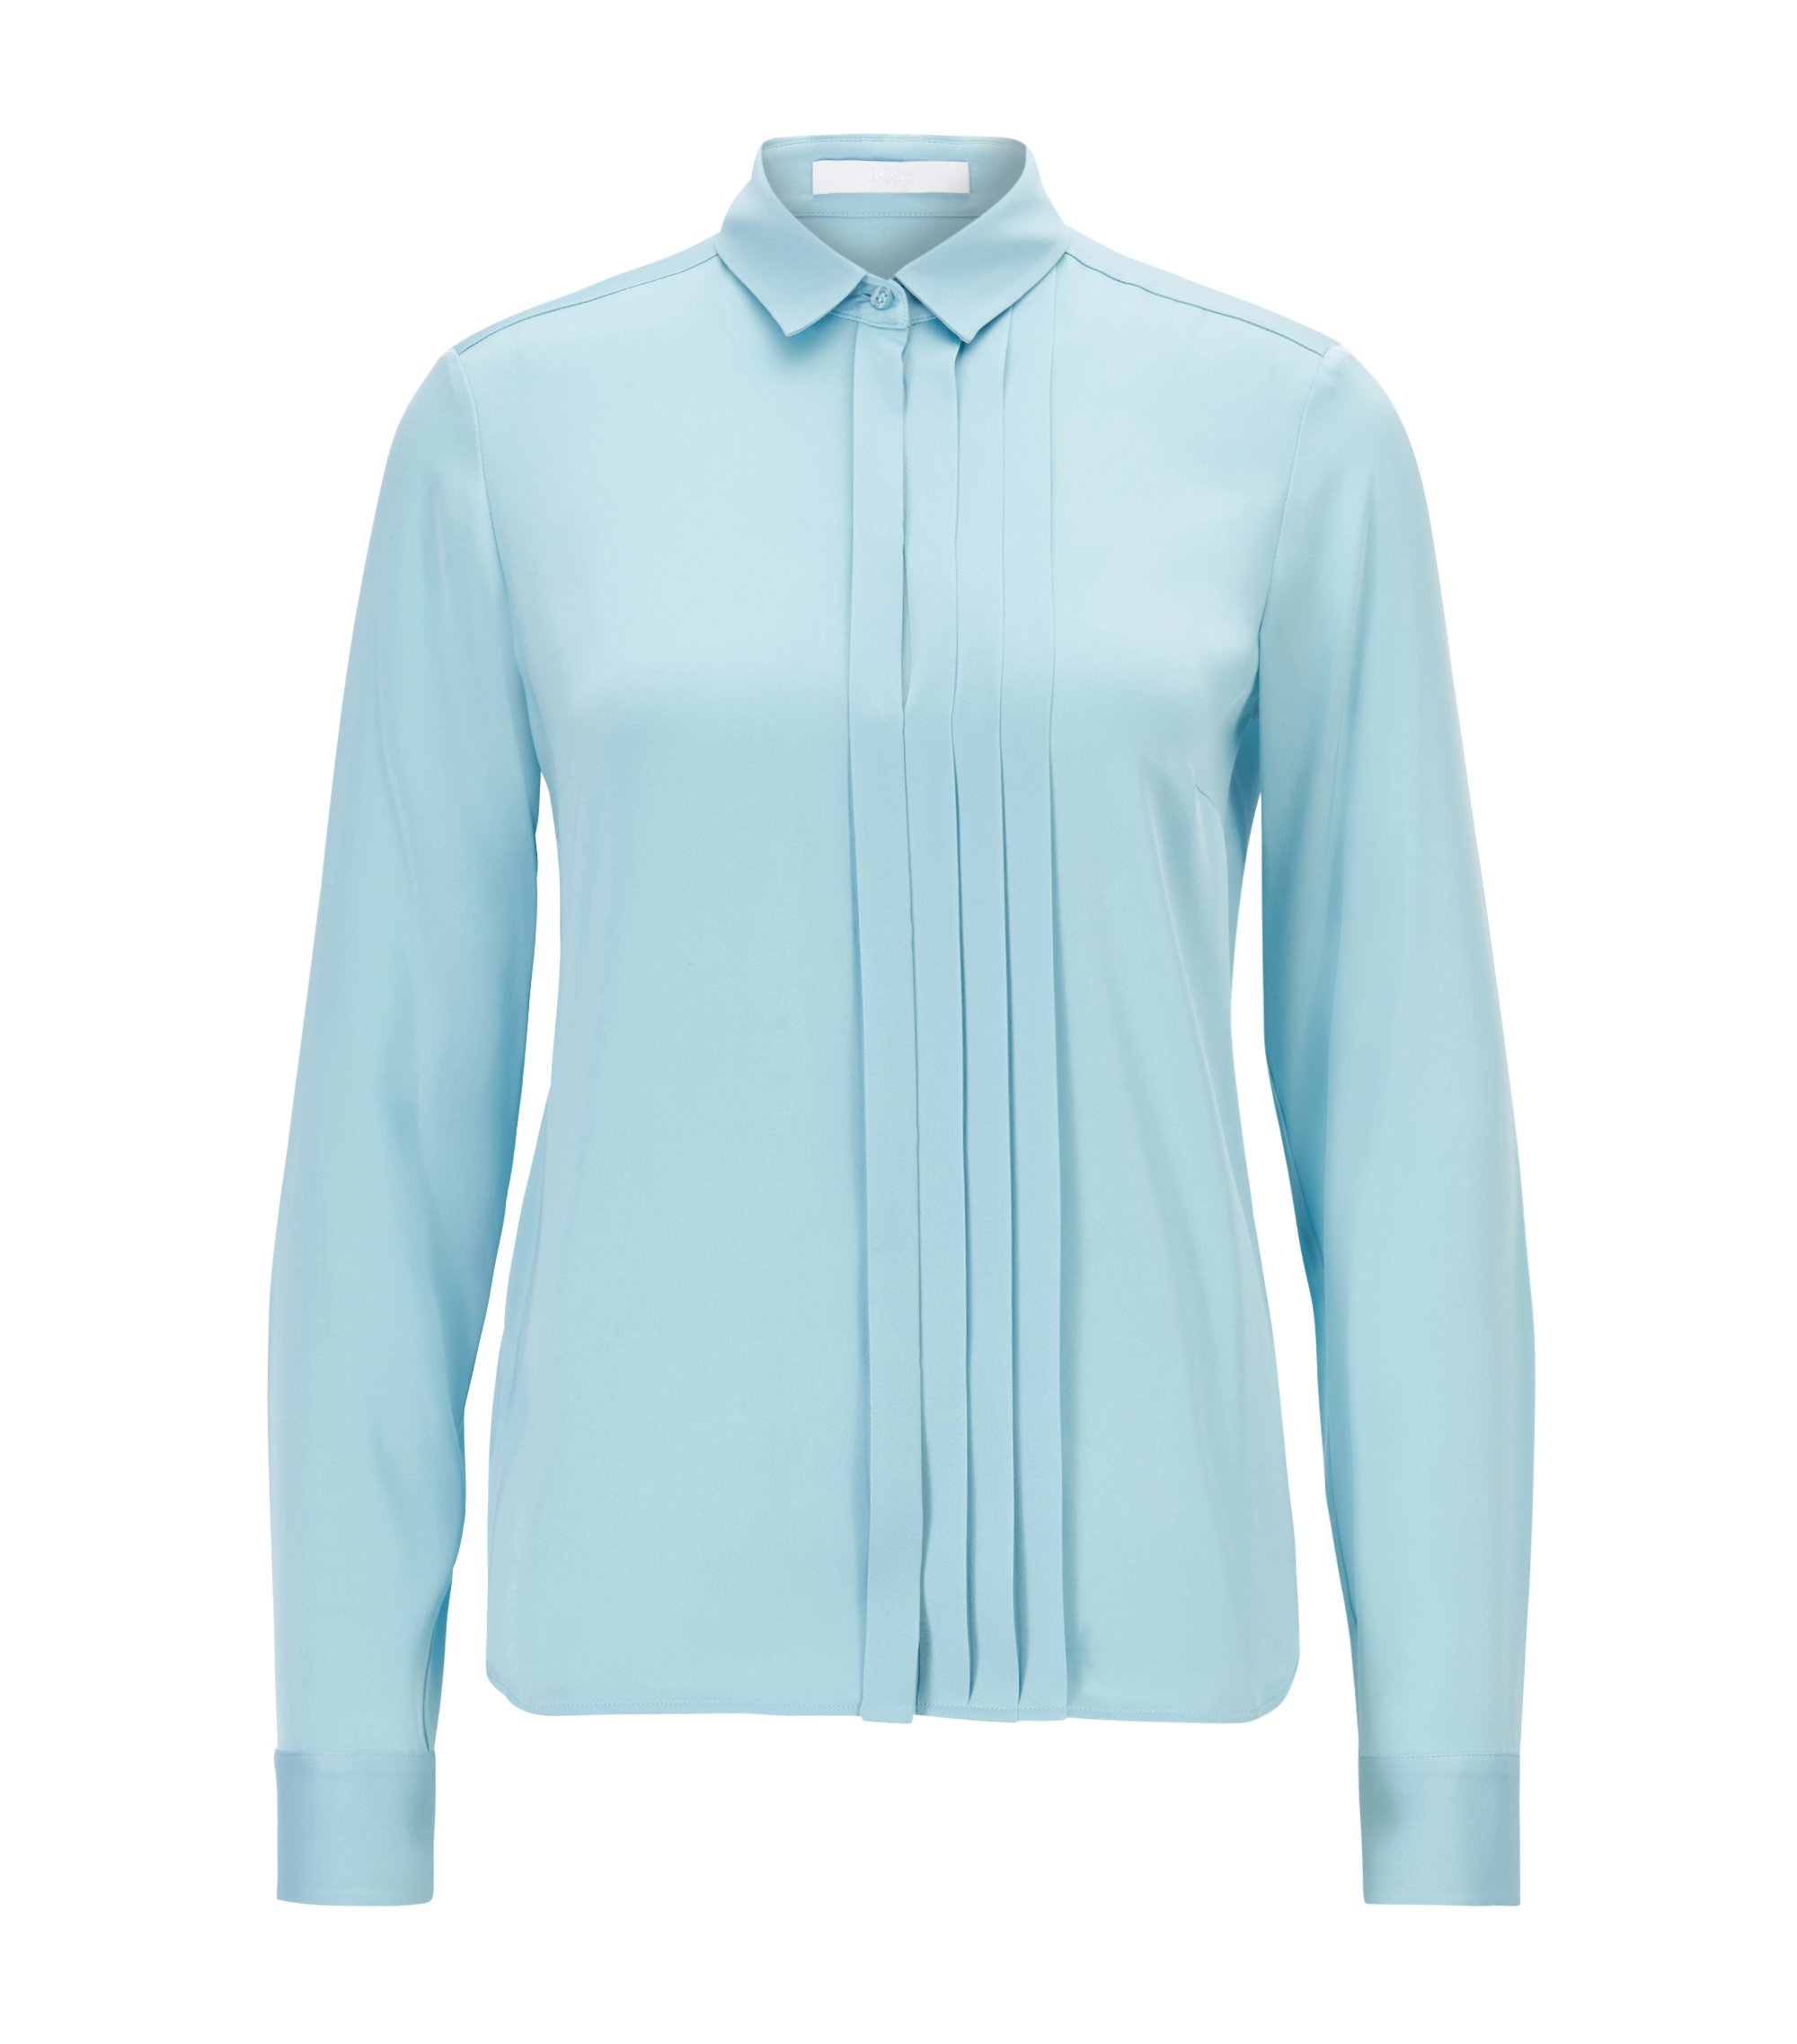 Regular-Fit Bluse aus Stretch-Seide mit Falten-Detail, Hellblau